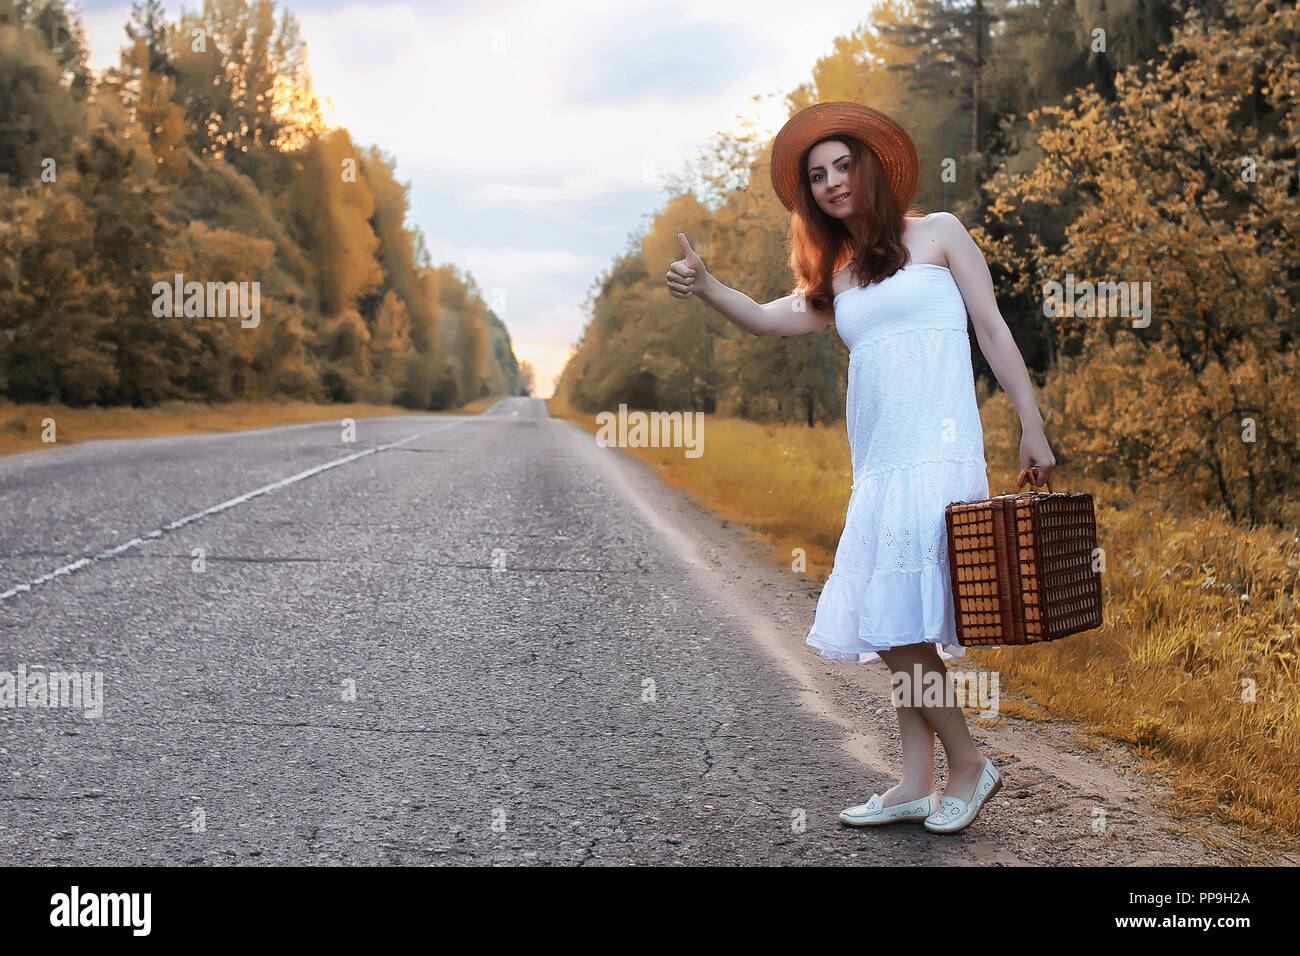 autumn park girl in white sundress and a wicker suitcase walking - Stock Image